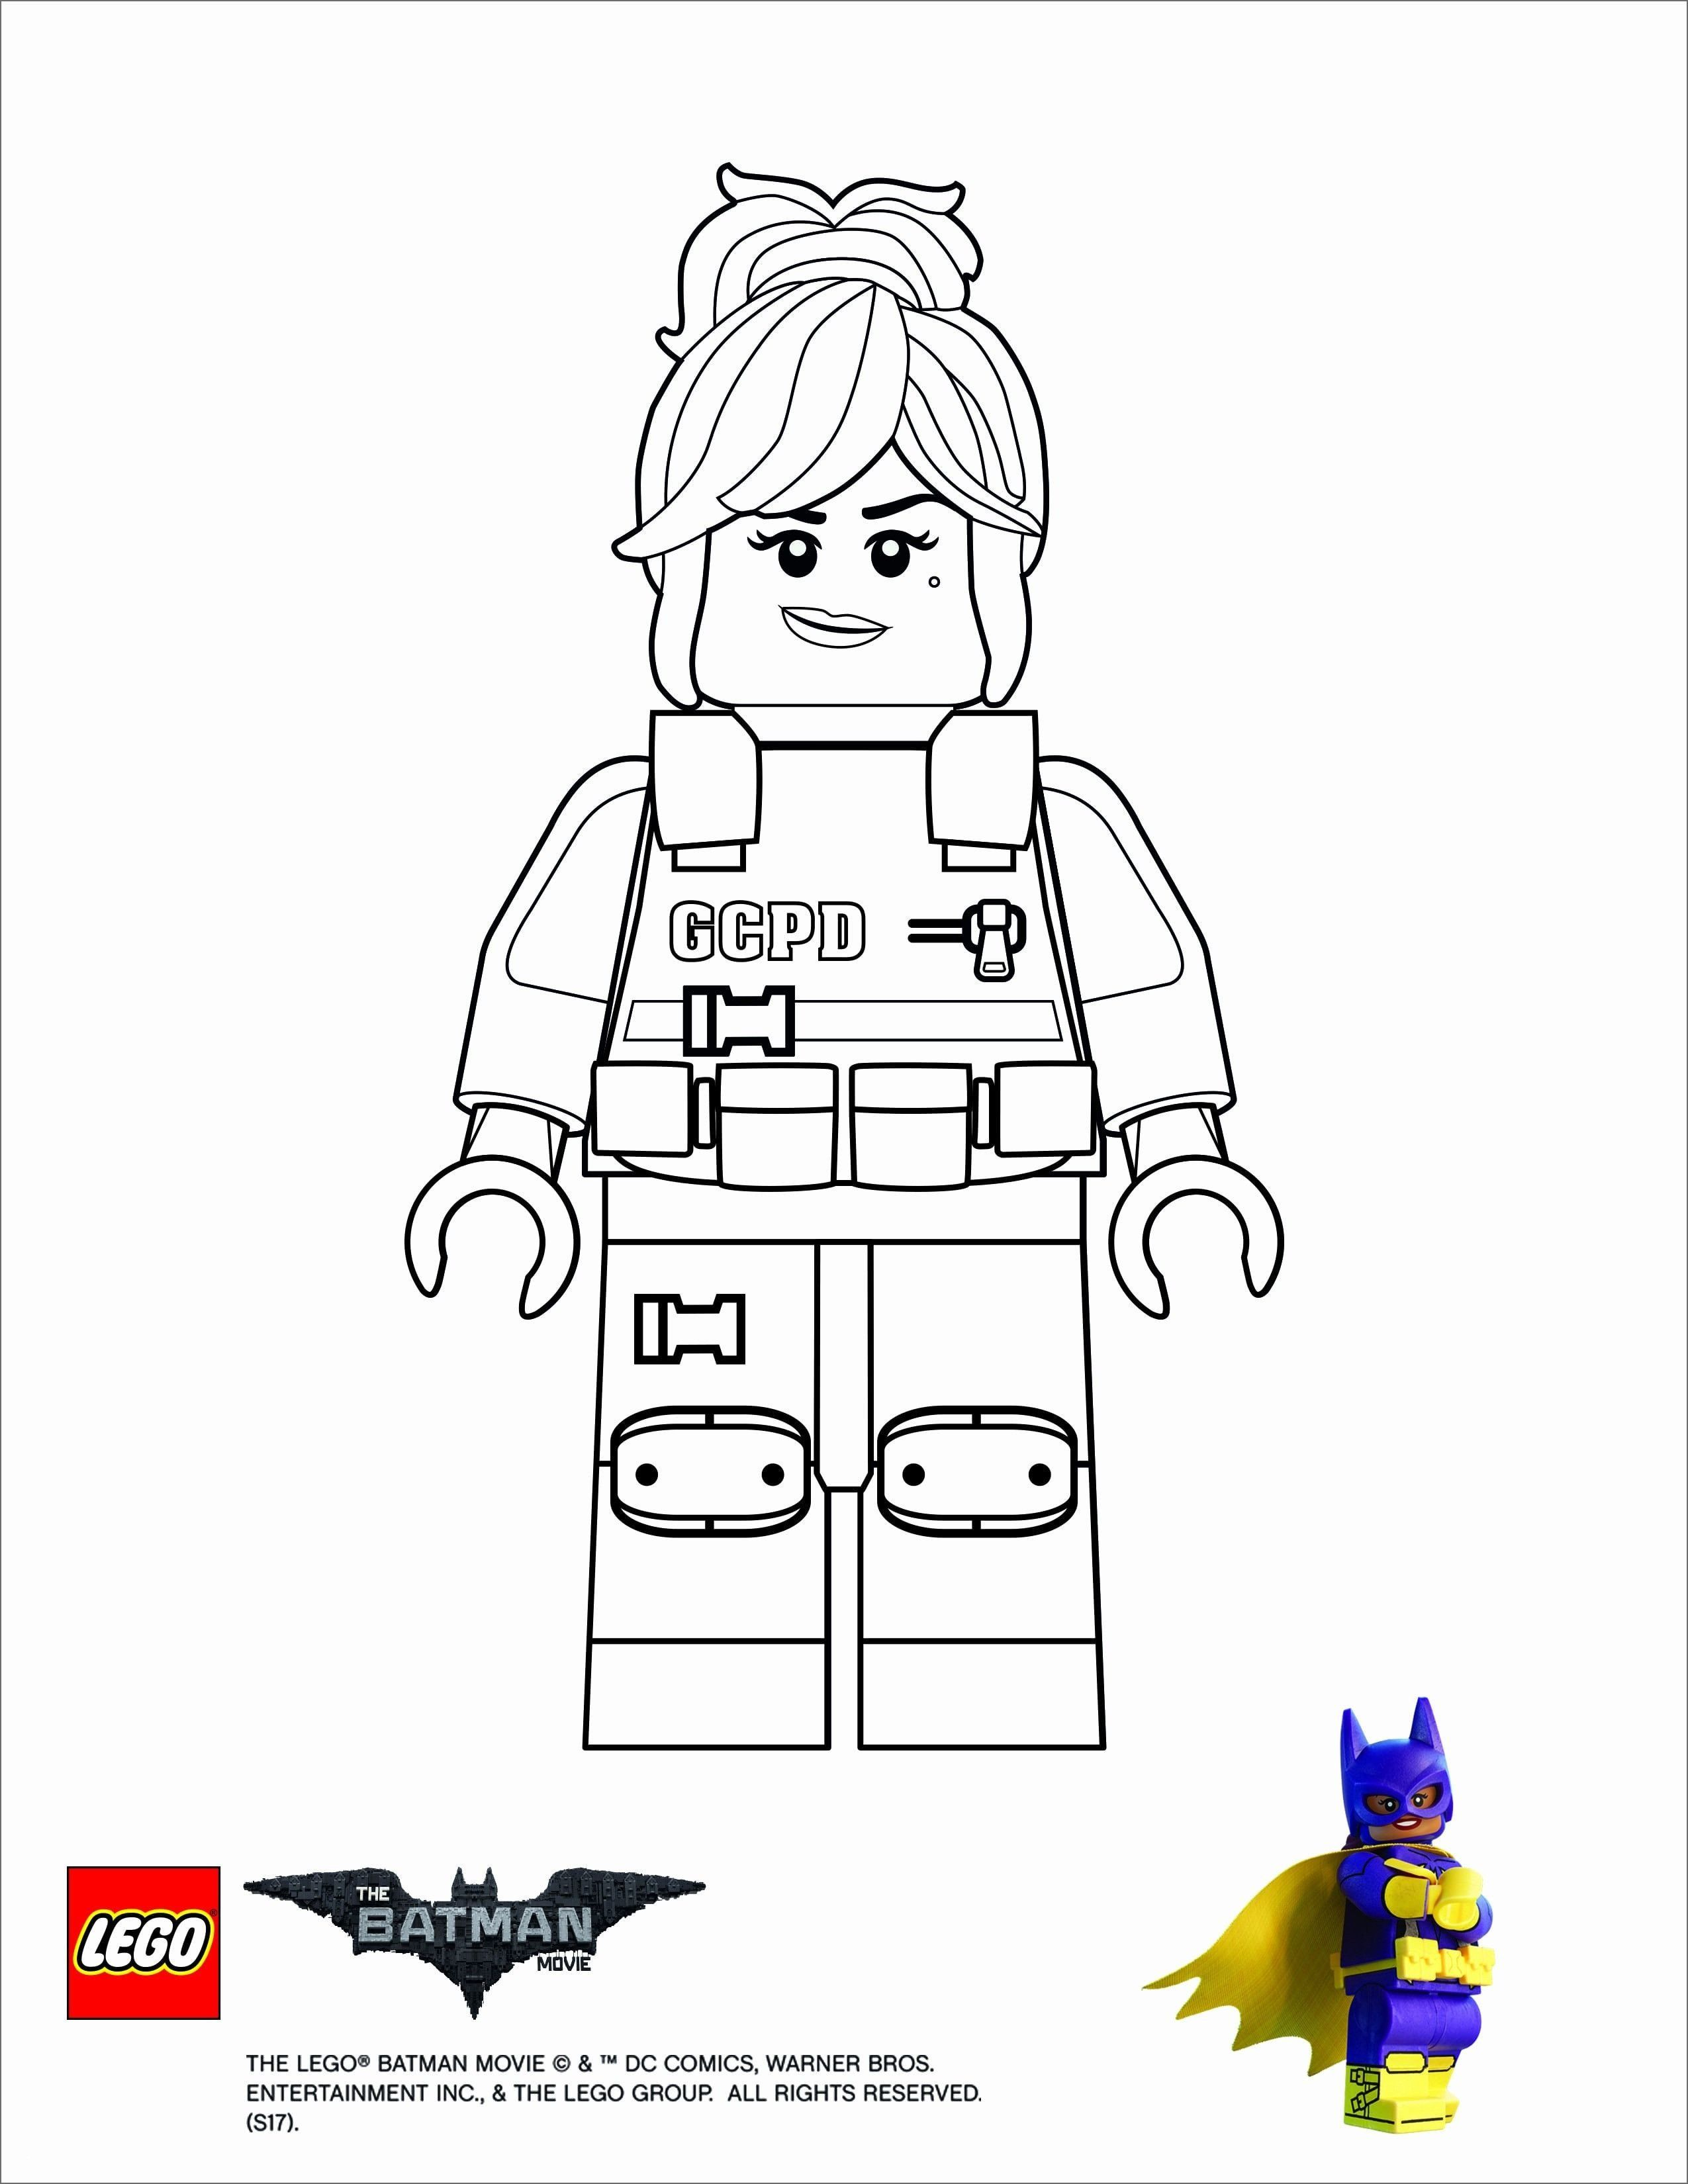 Justice League Coloring Pages Inspirational Lovely Coloring Pages Justice League In 2020 Lego Coloring Pages Lego Coloring Batman Coloring Pages